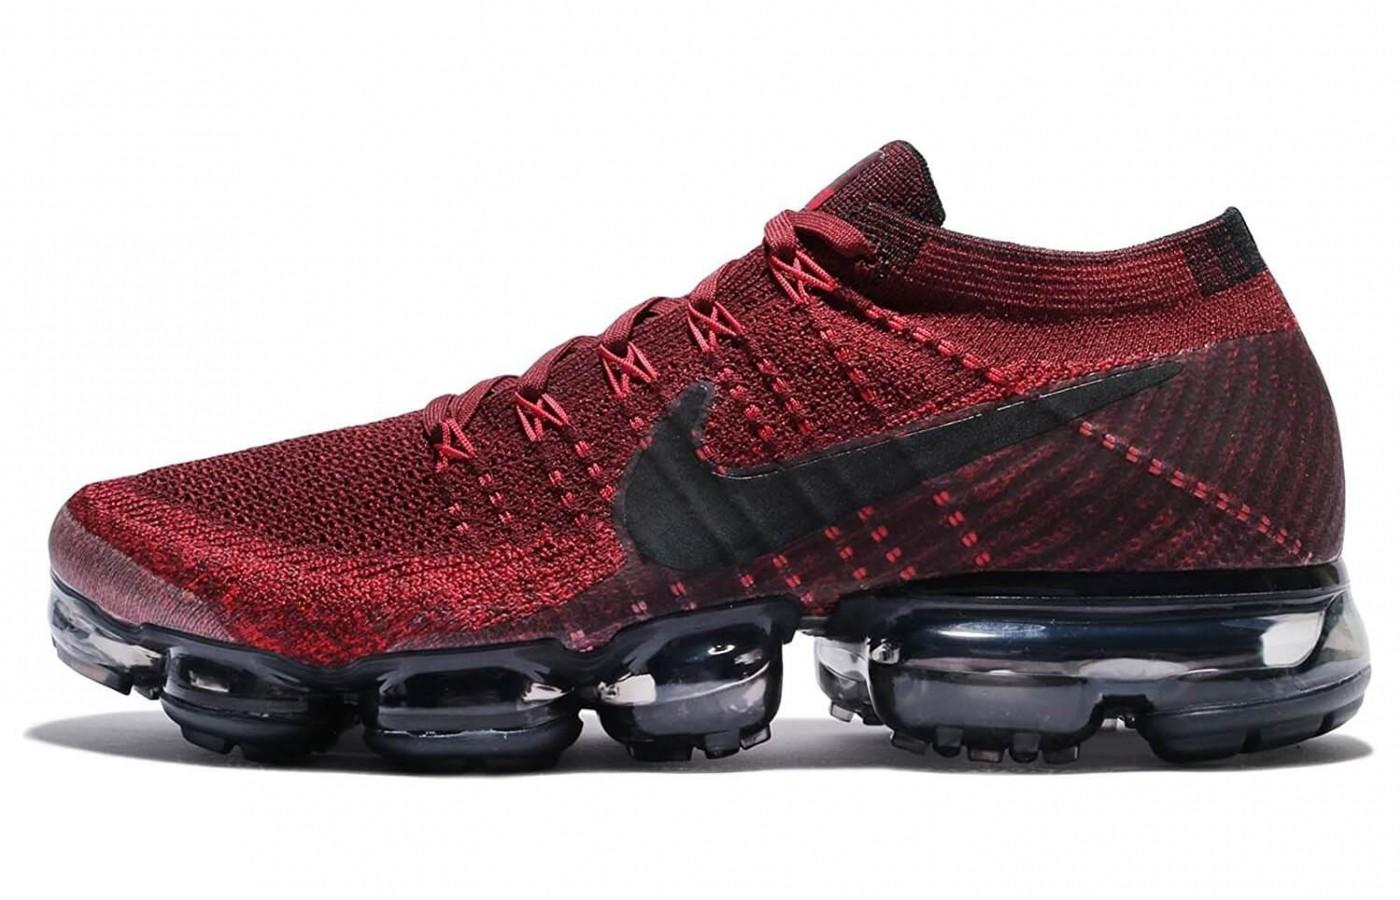 c9331f87c7f93 Nike Air Vapormax Flyknit - To Buy or Not in May 2019